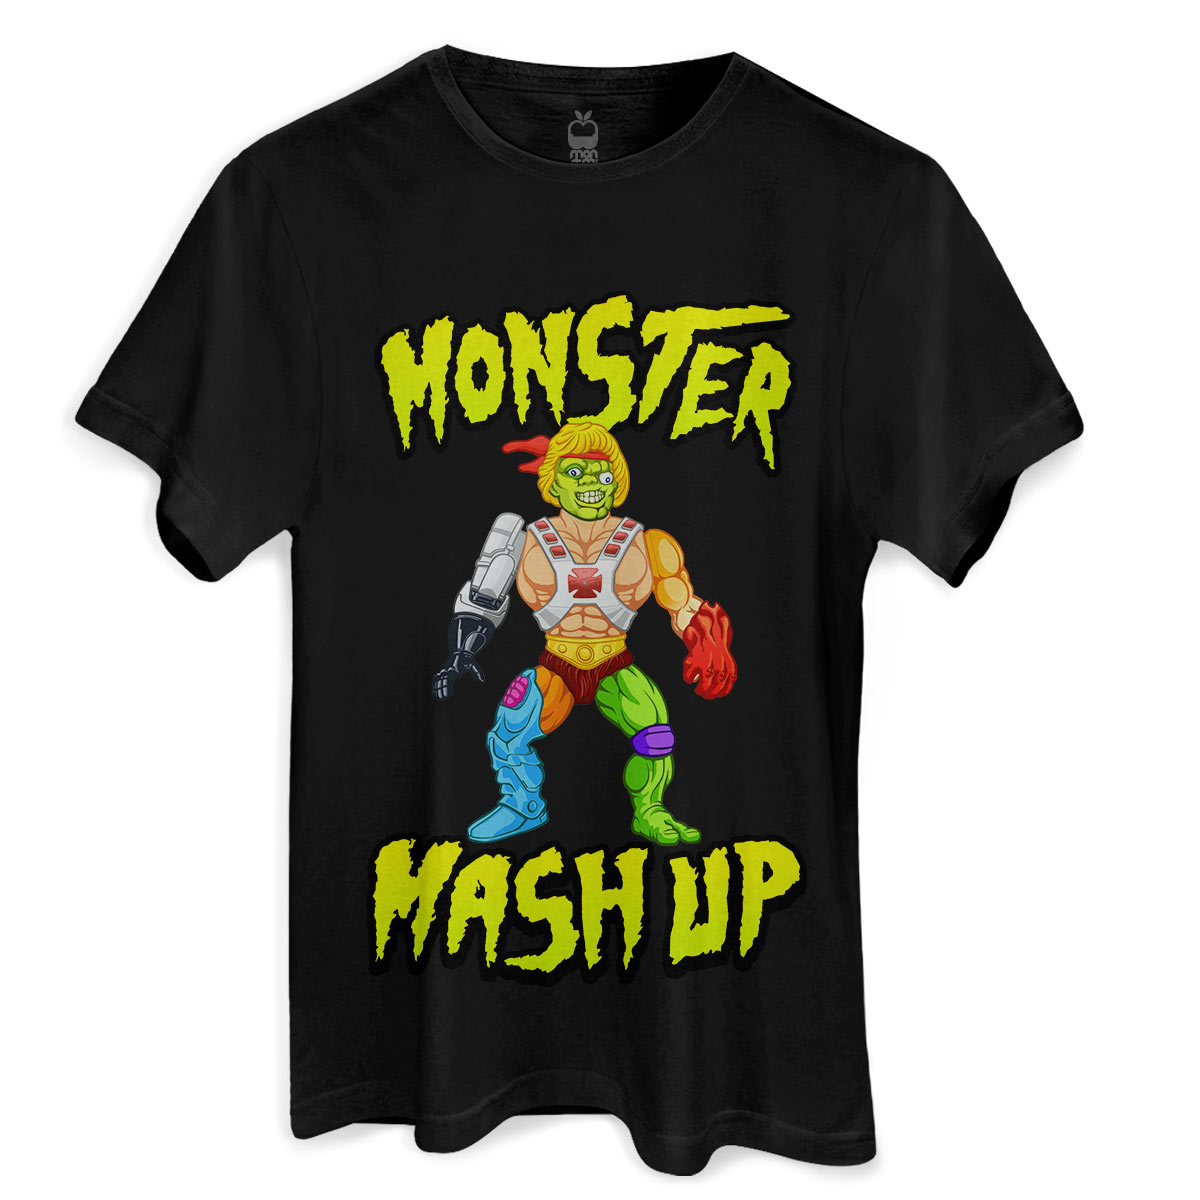 Camiseta Monstra Maçã Monster Mash Up